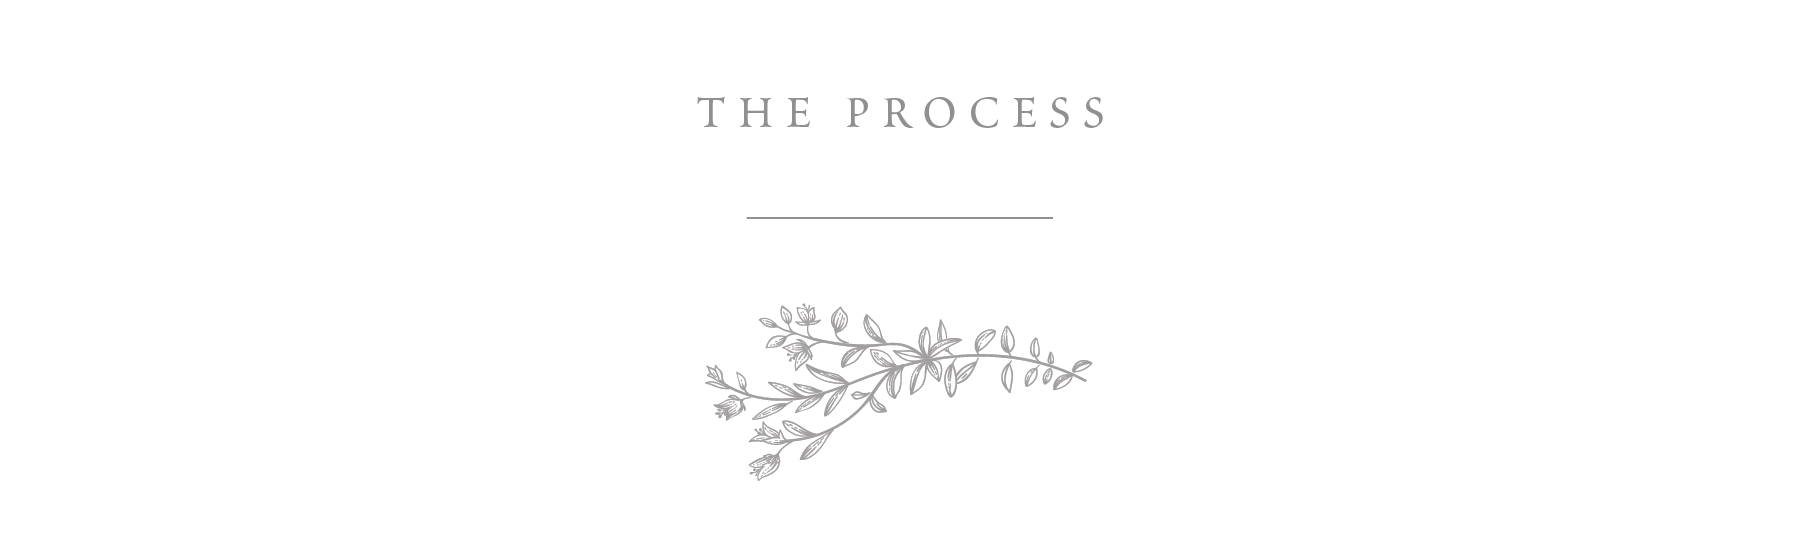 The Process.png